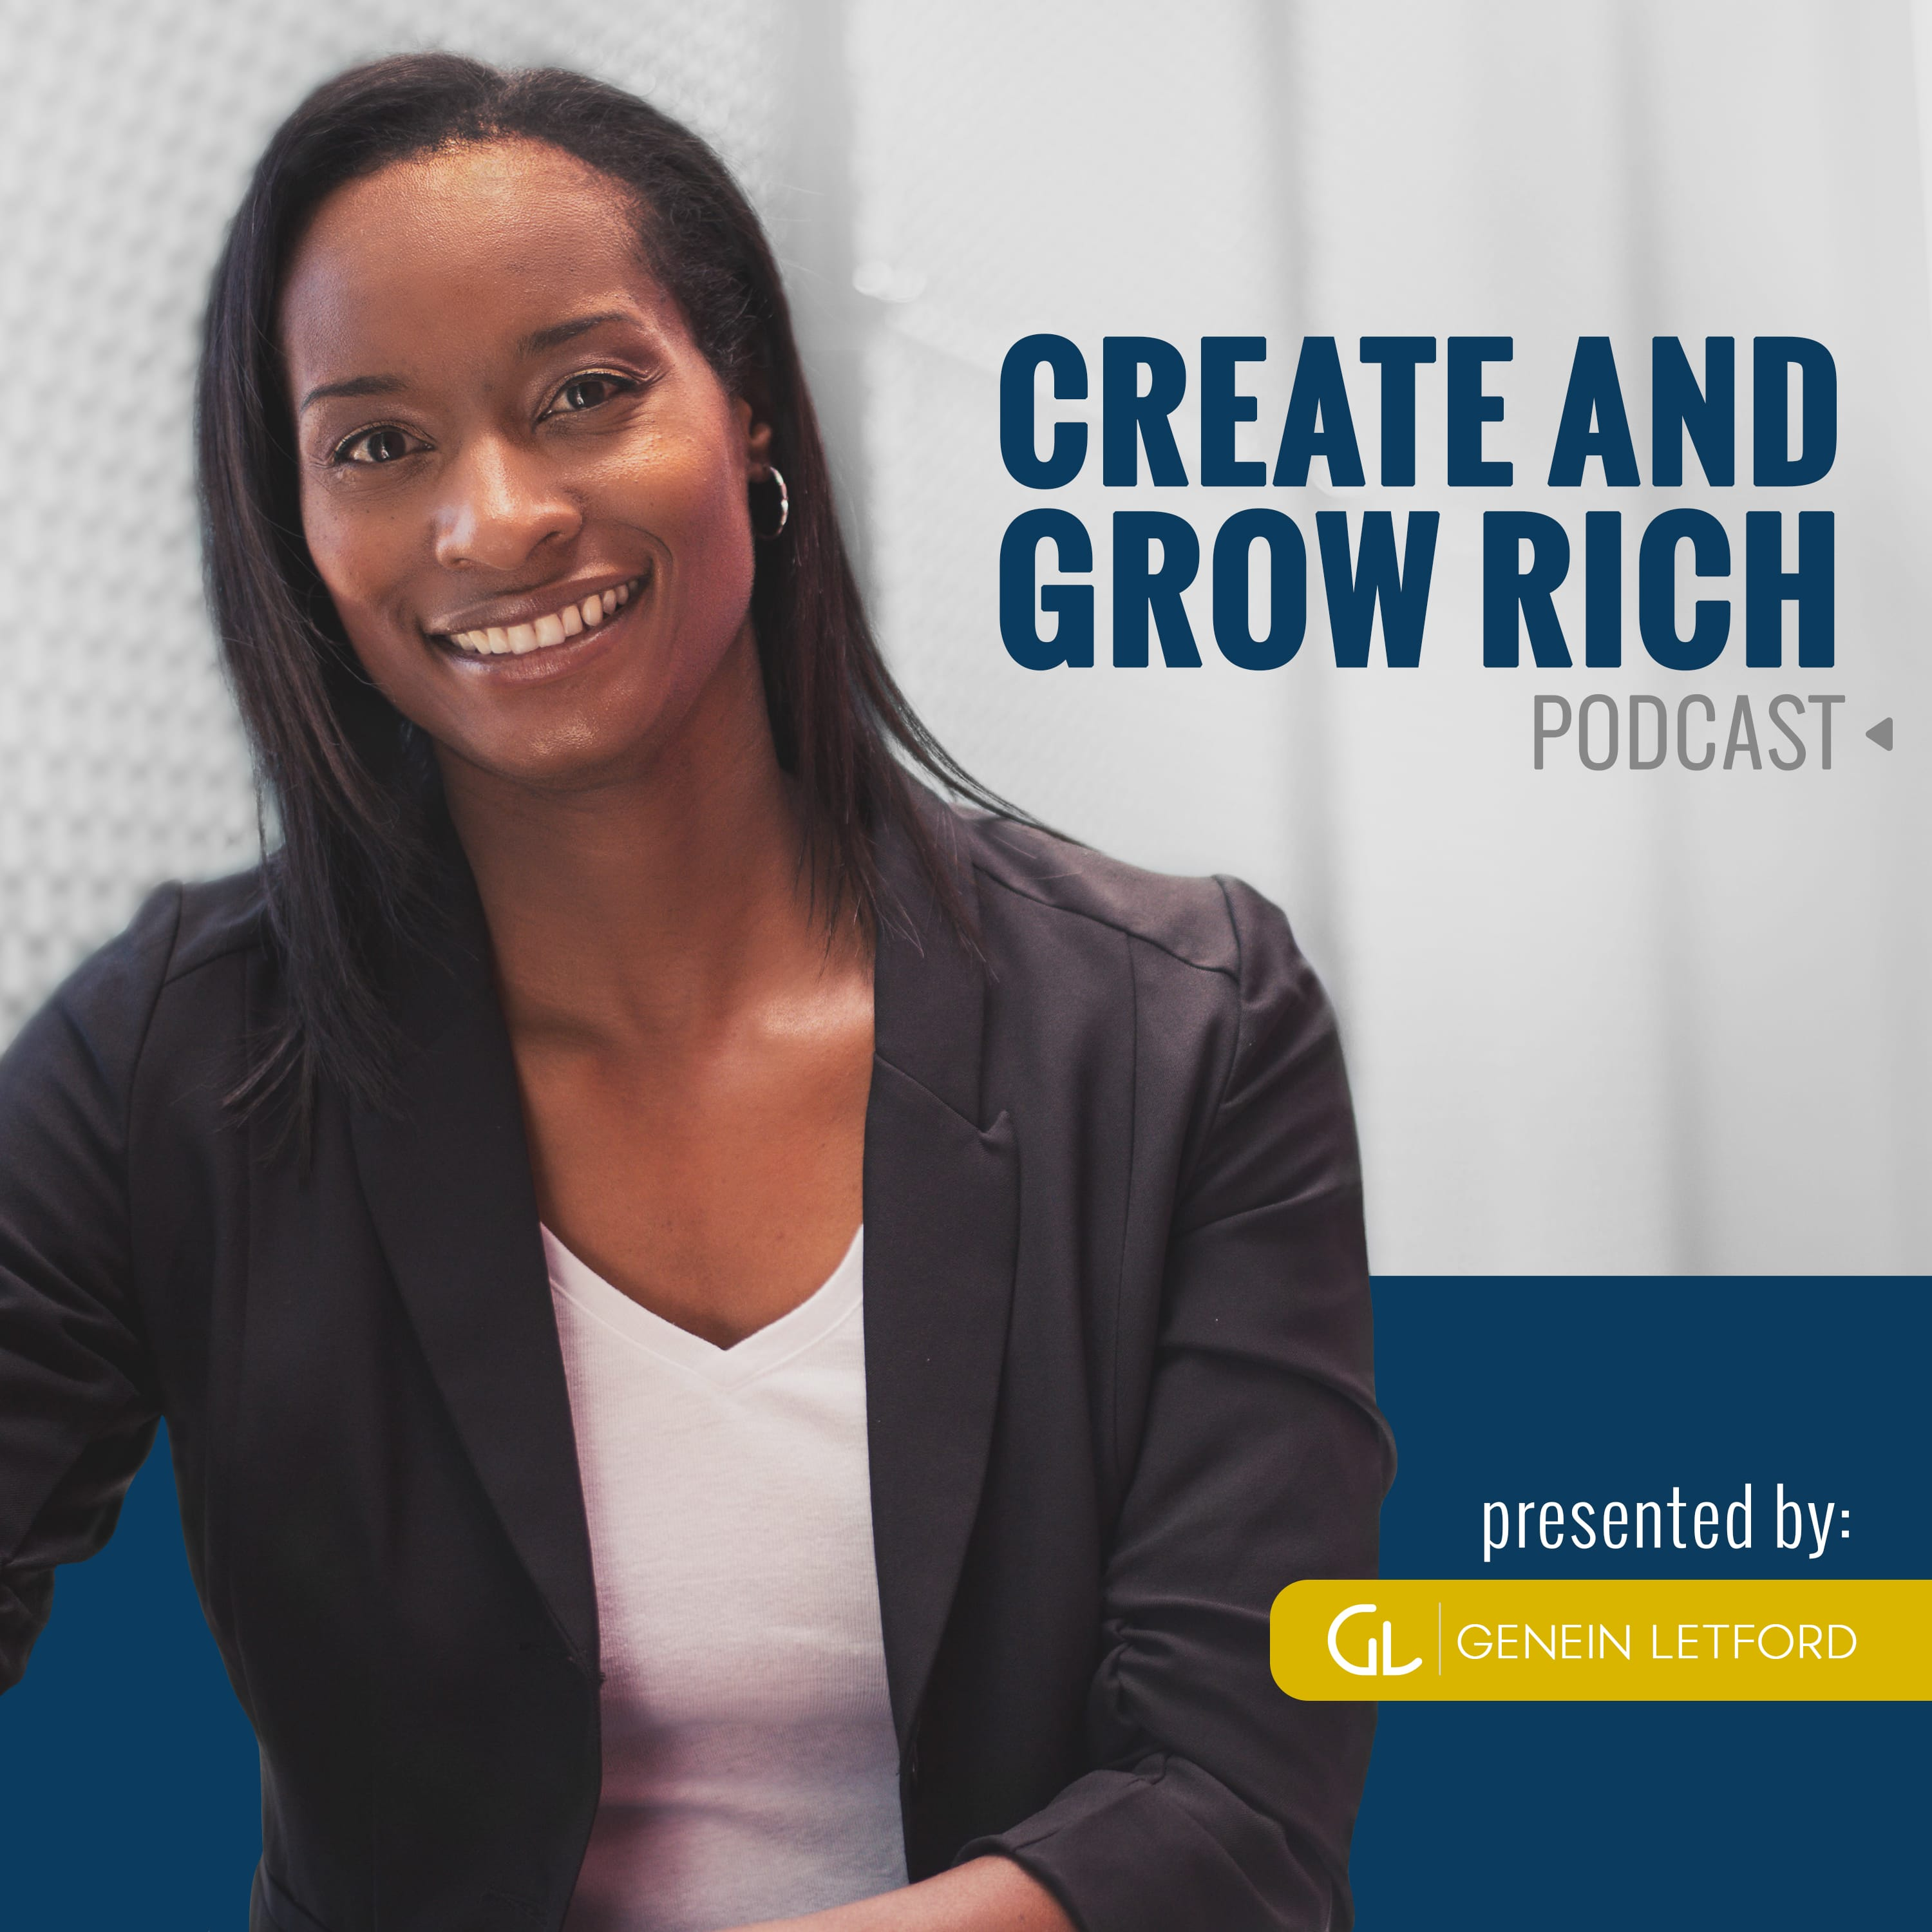 Create and Grow Rich Podcast